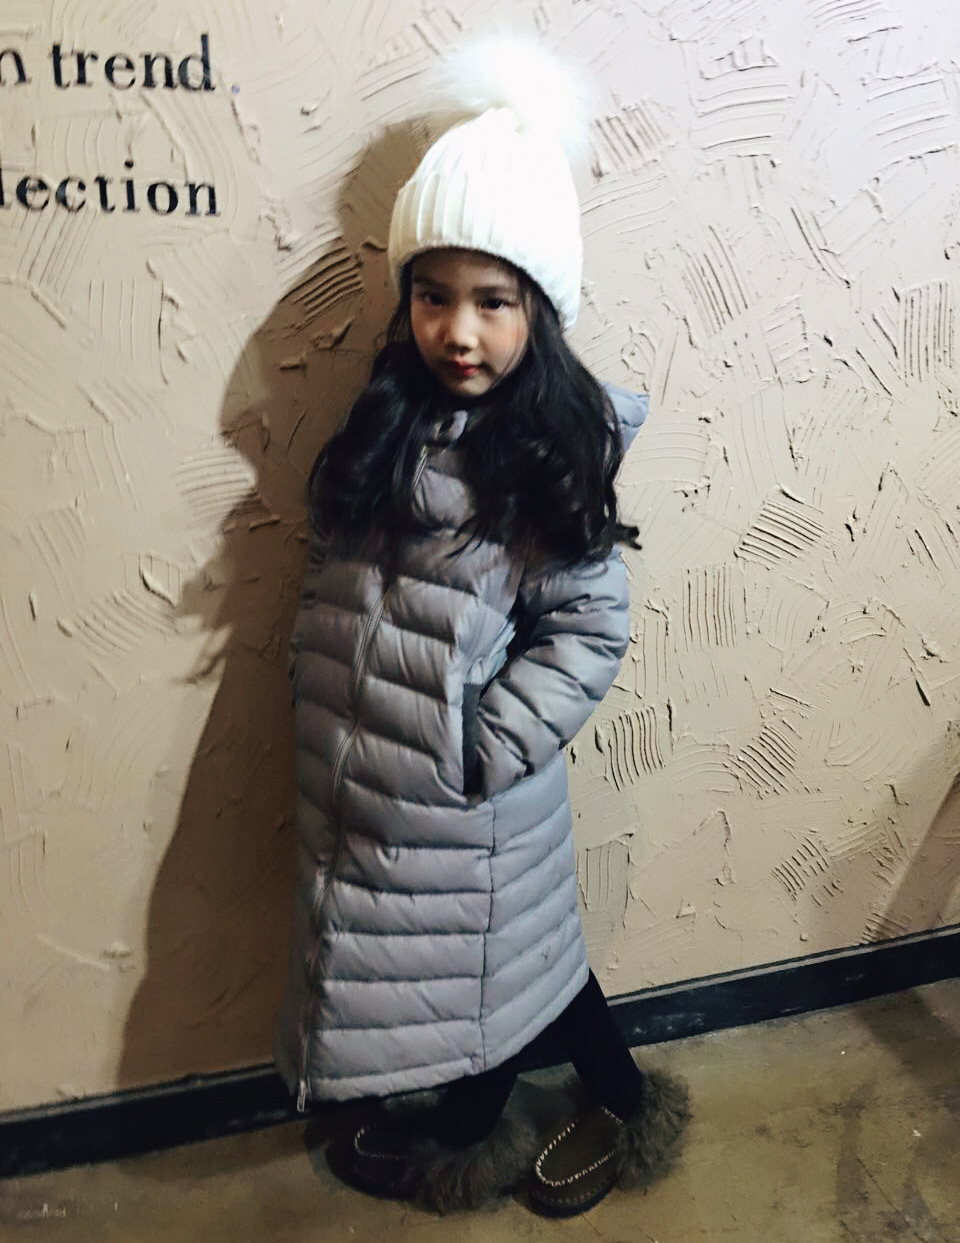 Girls Winter Down Jackets Thicken Long Warm Jacket Baby Girls Casual Hooded Down Coats Windproof Jackets Kids Outerwear Parkas 2016 new brand child girls winter white duck down jackets coats thick hooded outwar waistband kids girls warm down jacket parkas